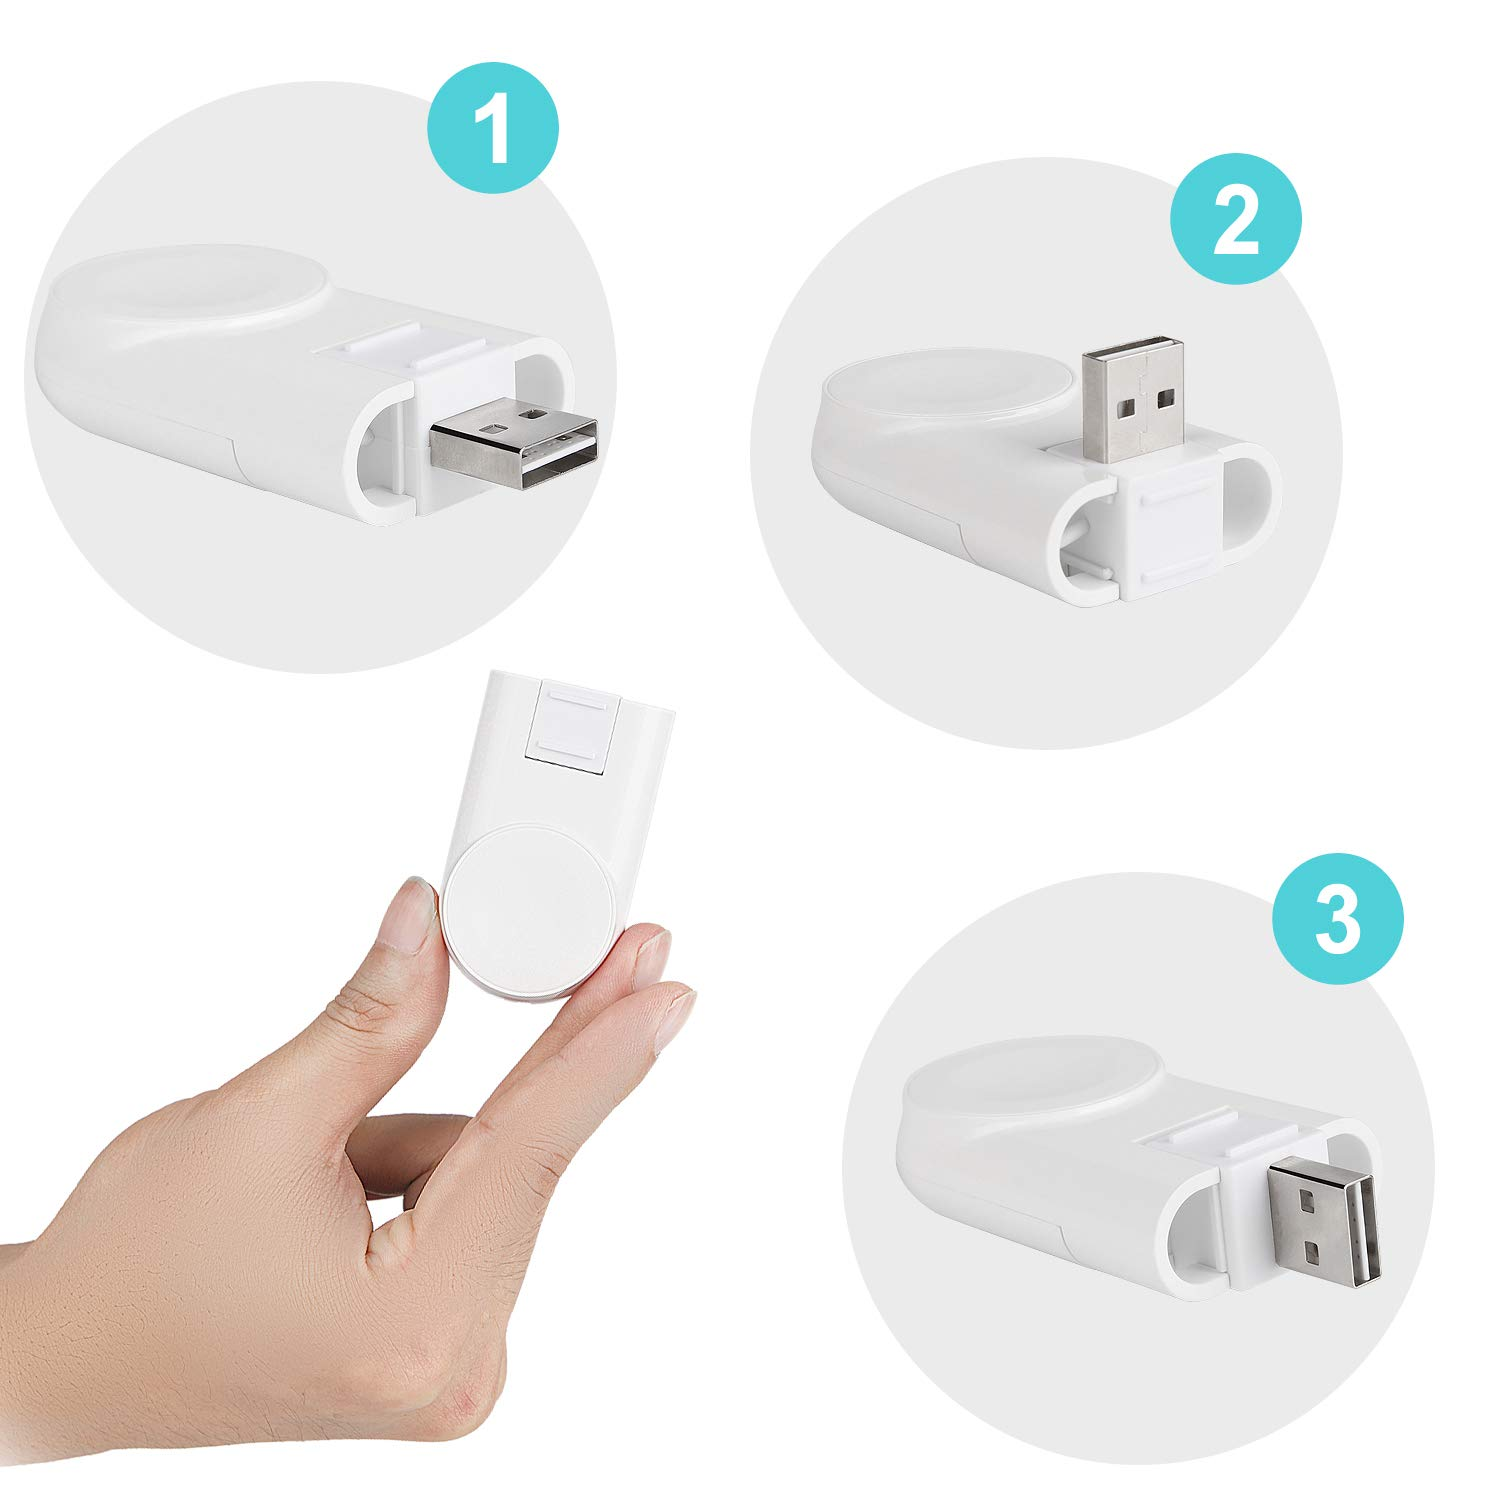 Watch Charger, Twinkk 3-Angles Adjustable Magnetic Portable Wireless iWatch Charger Compatible for Apple Watch Series 4 3 2 1 44mm 42mm 40mm 38mm(White)